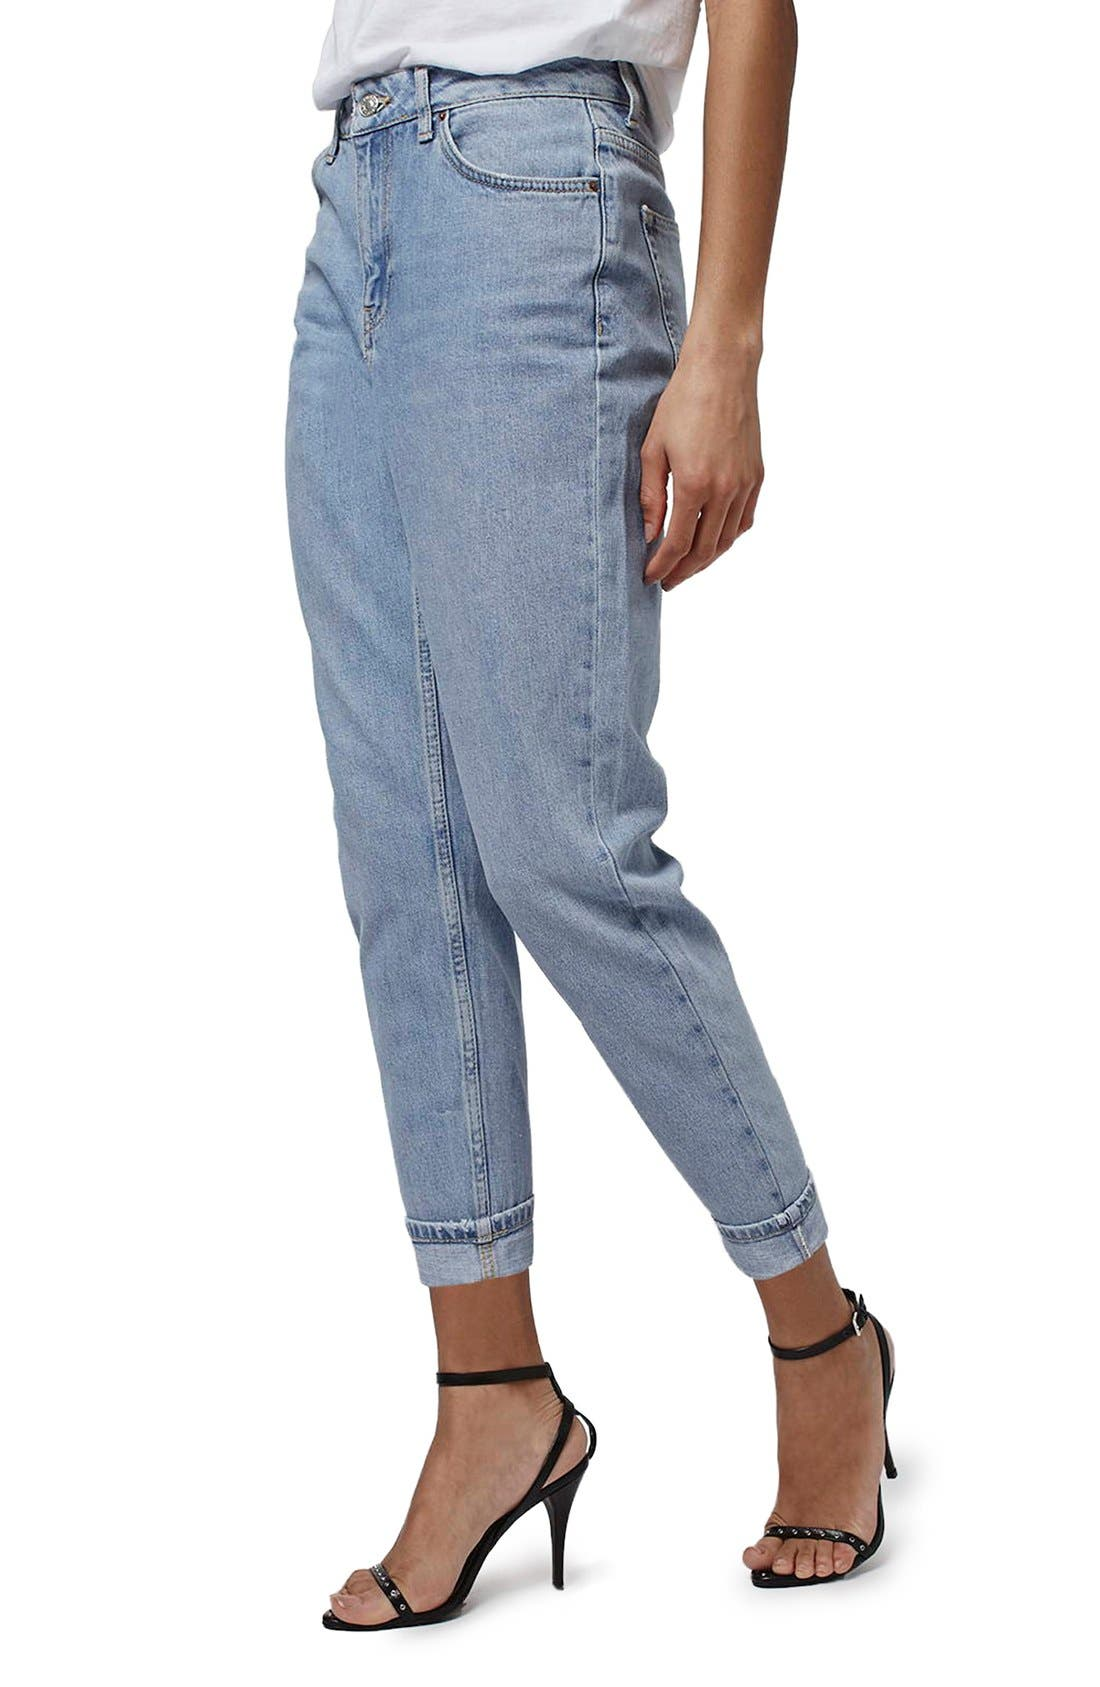 Alternate Image 1 Selected - Topshop Mom Jeans (Lilac) (Petite)